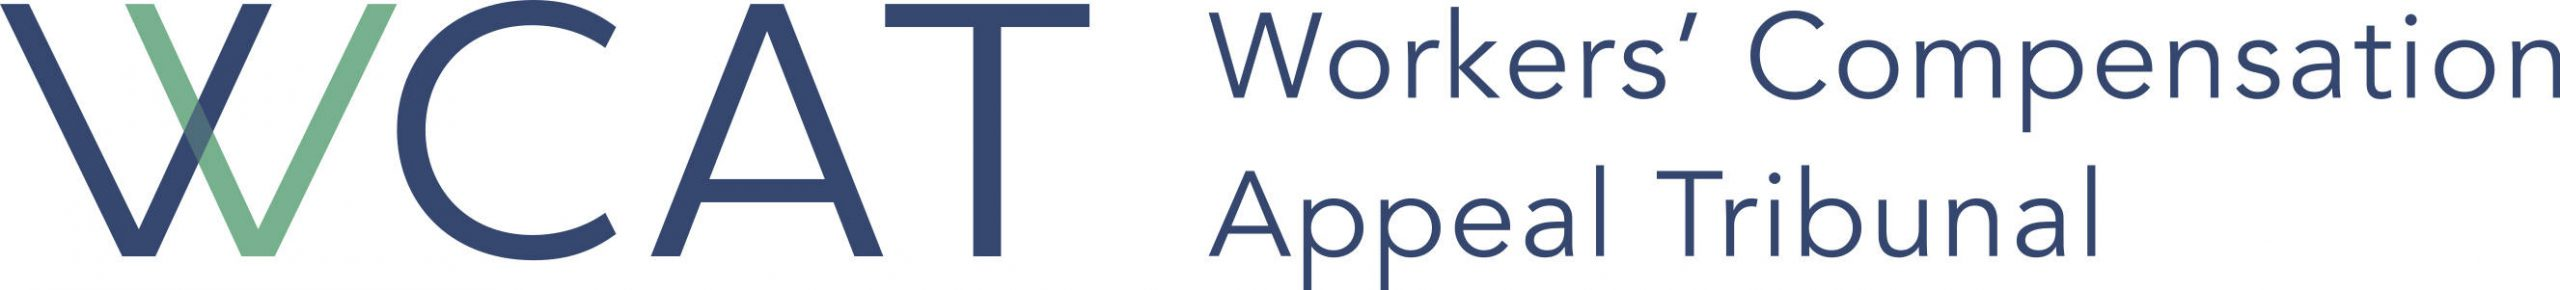 Workers' Compensation Appeal Tribunal (WCAT)